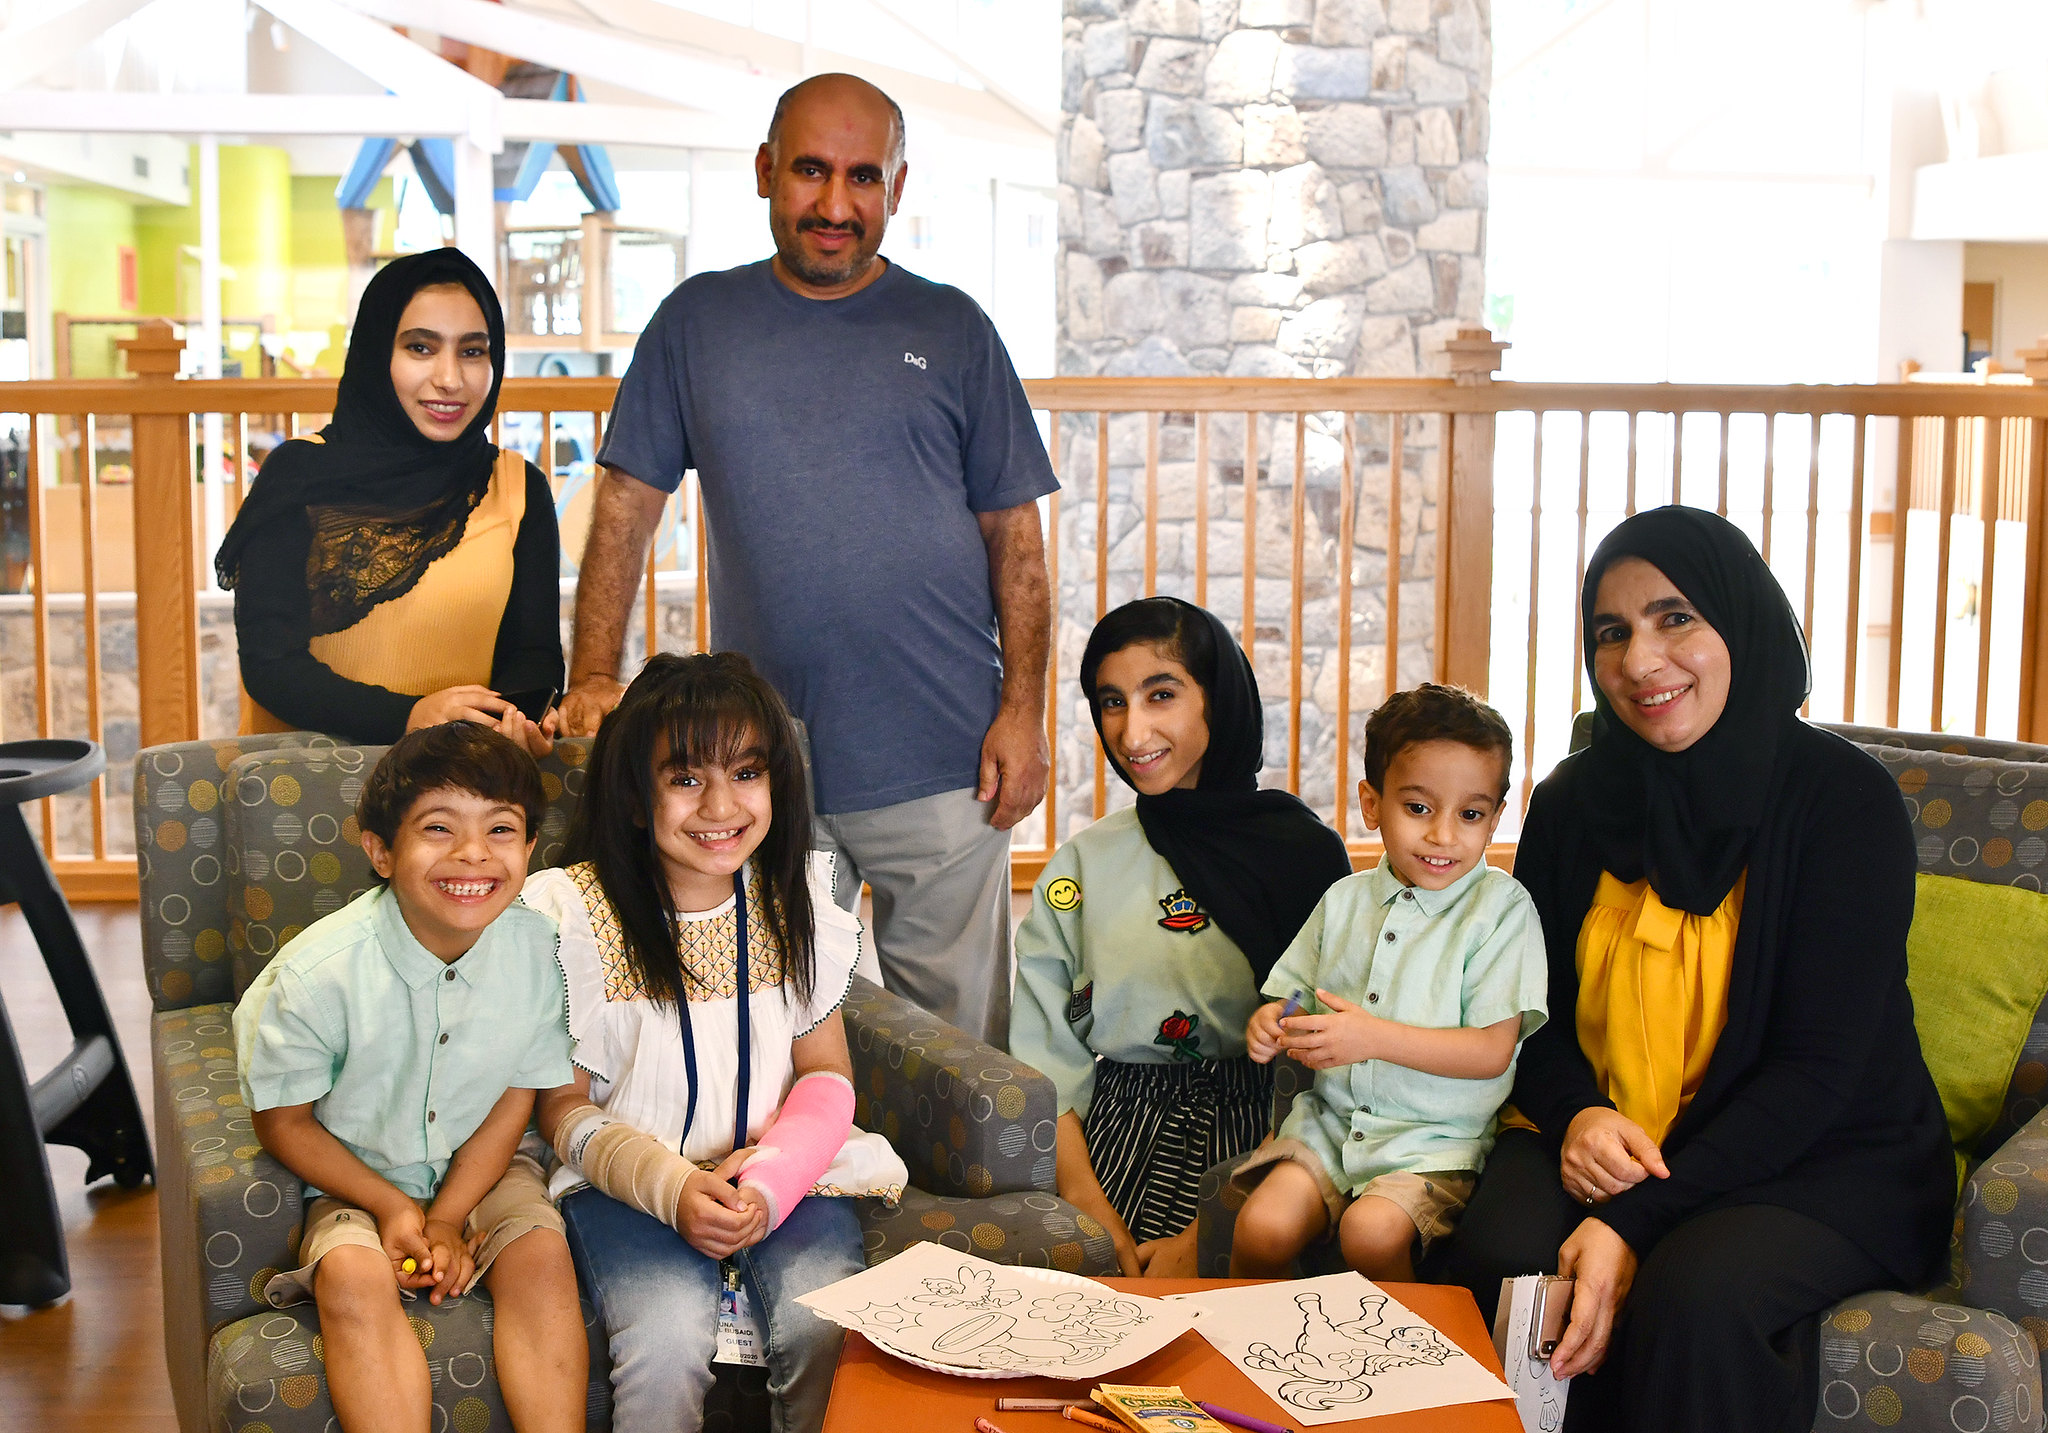 Muna pictured with her family